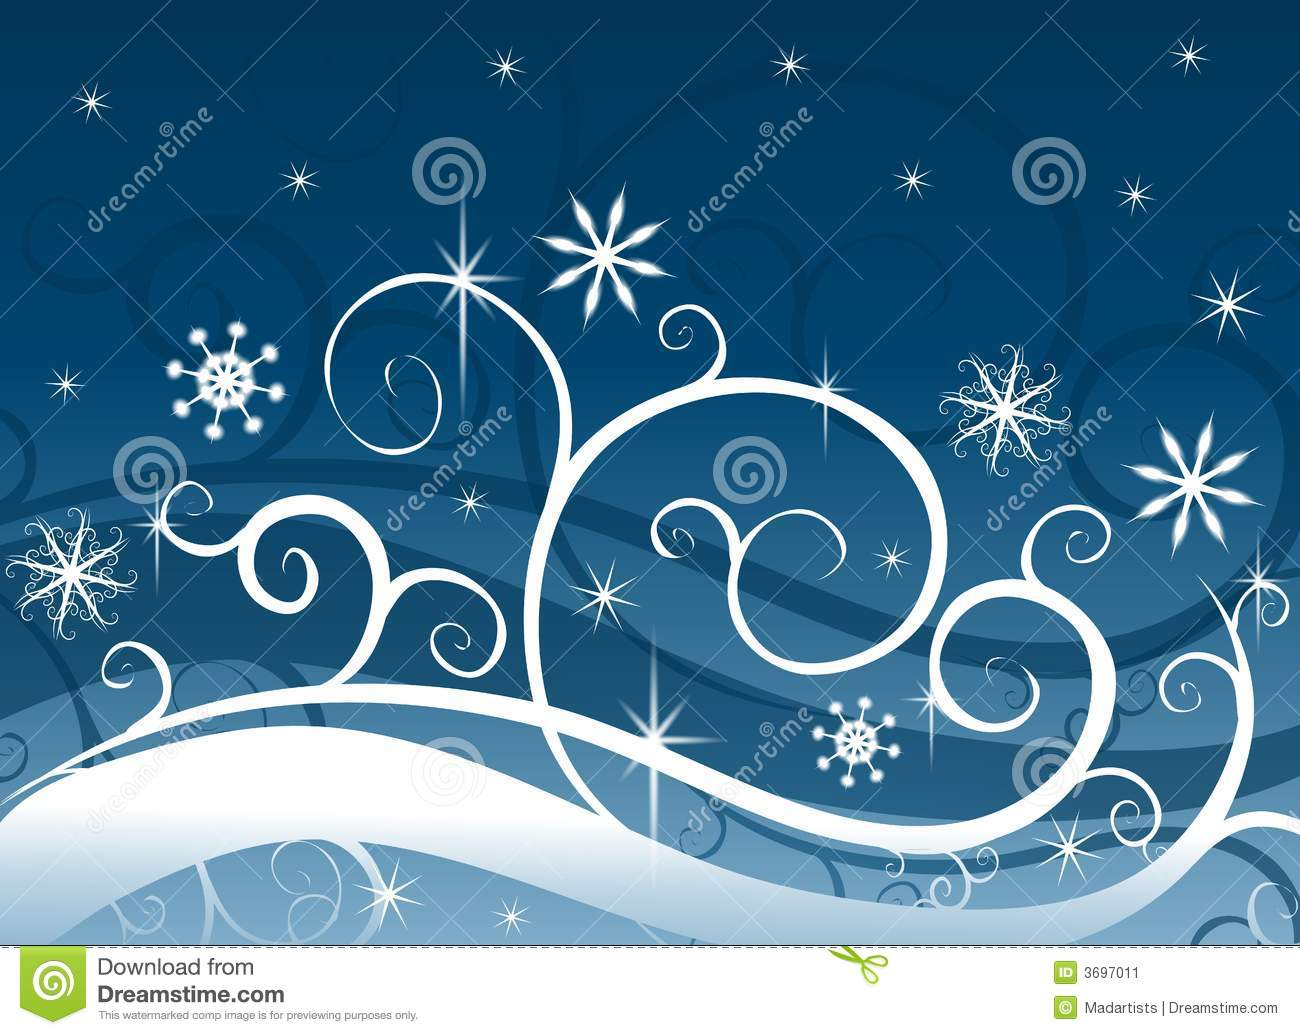 Blue Winter Wonderland Snowflakes Stock Image - Image: 3697011